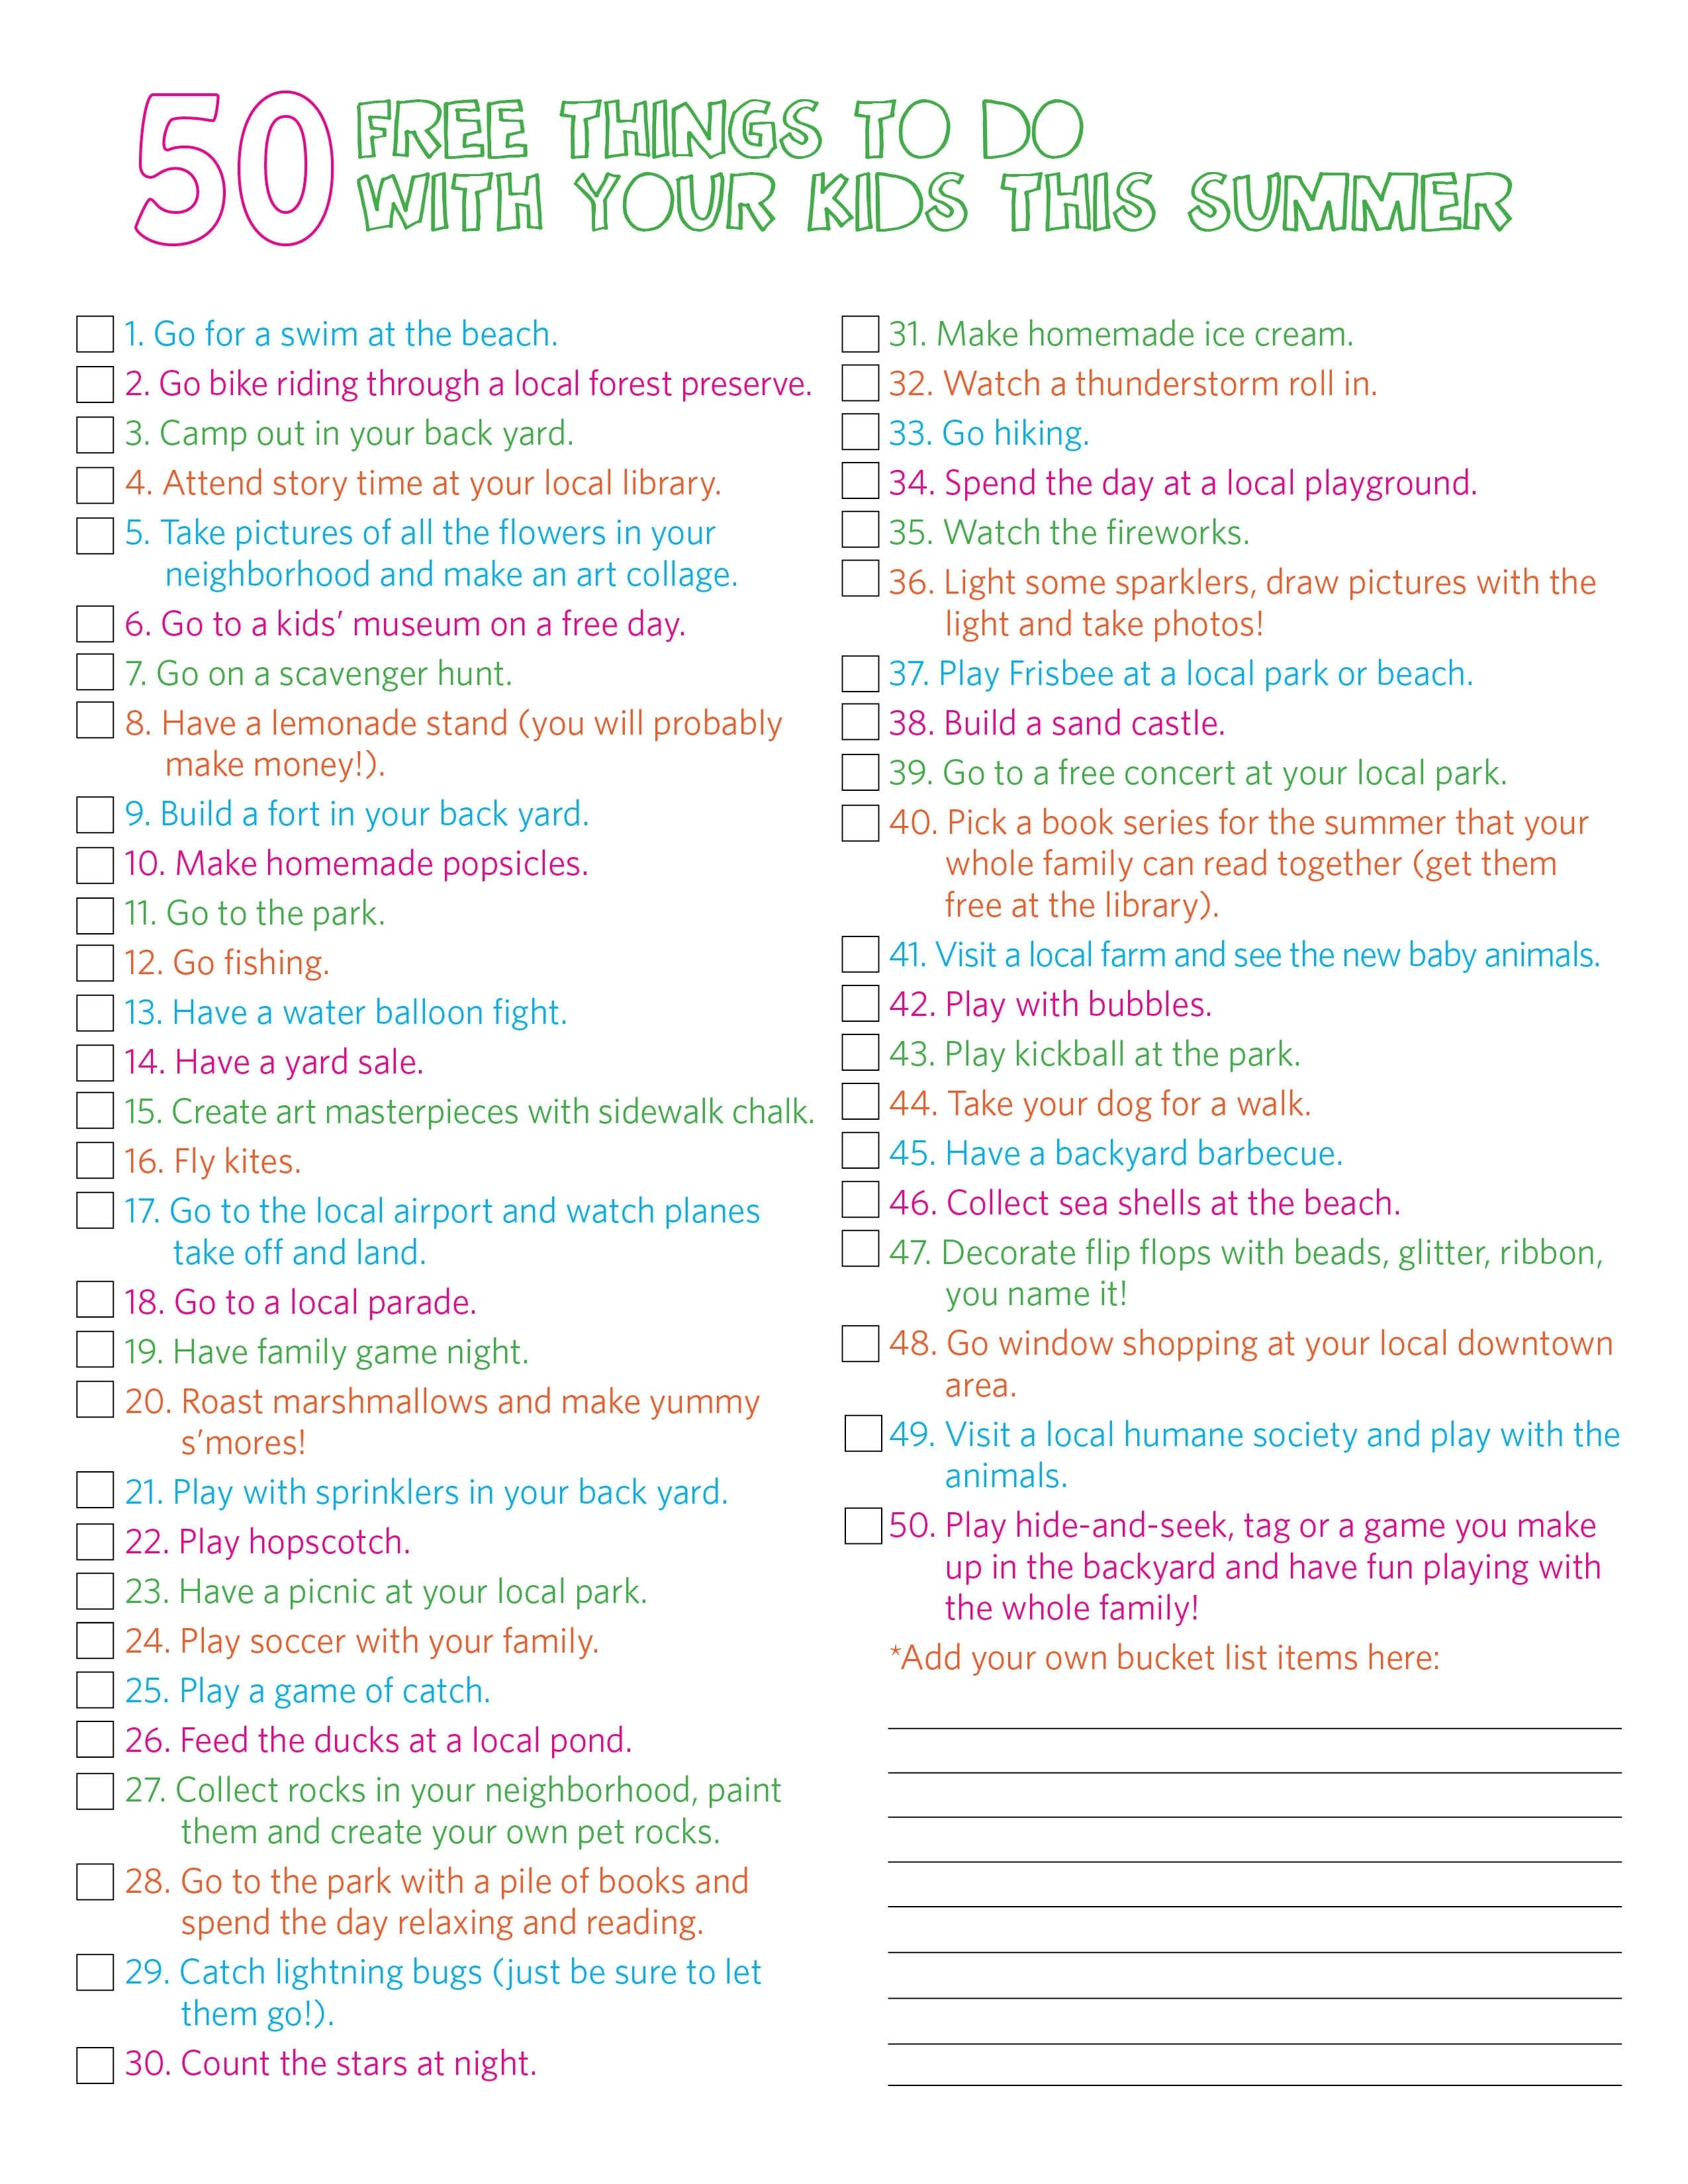 10 Most Popular Crazy Bucket List Ideas For Teenagers thrifty thursday this summers bucket list 50 free things to do 2 2021